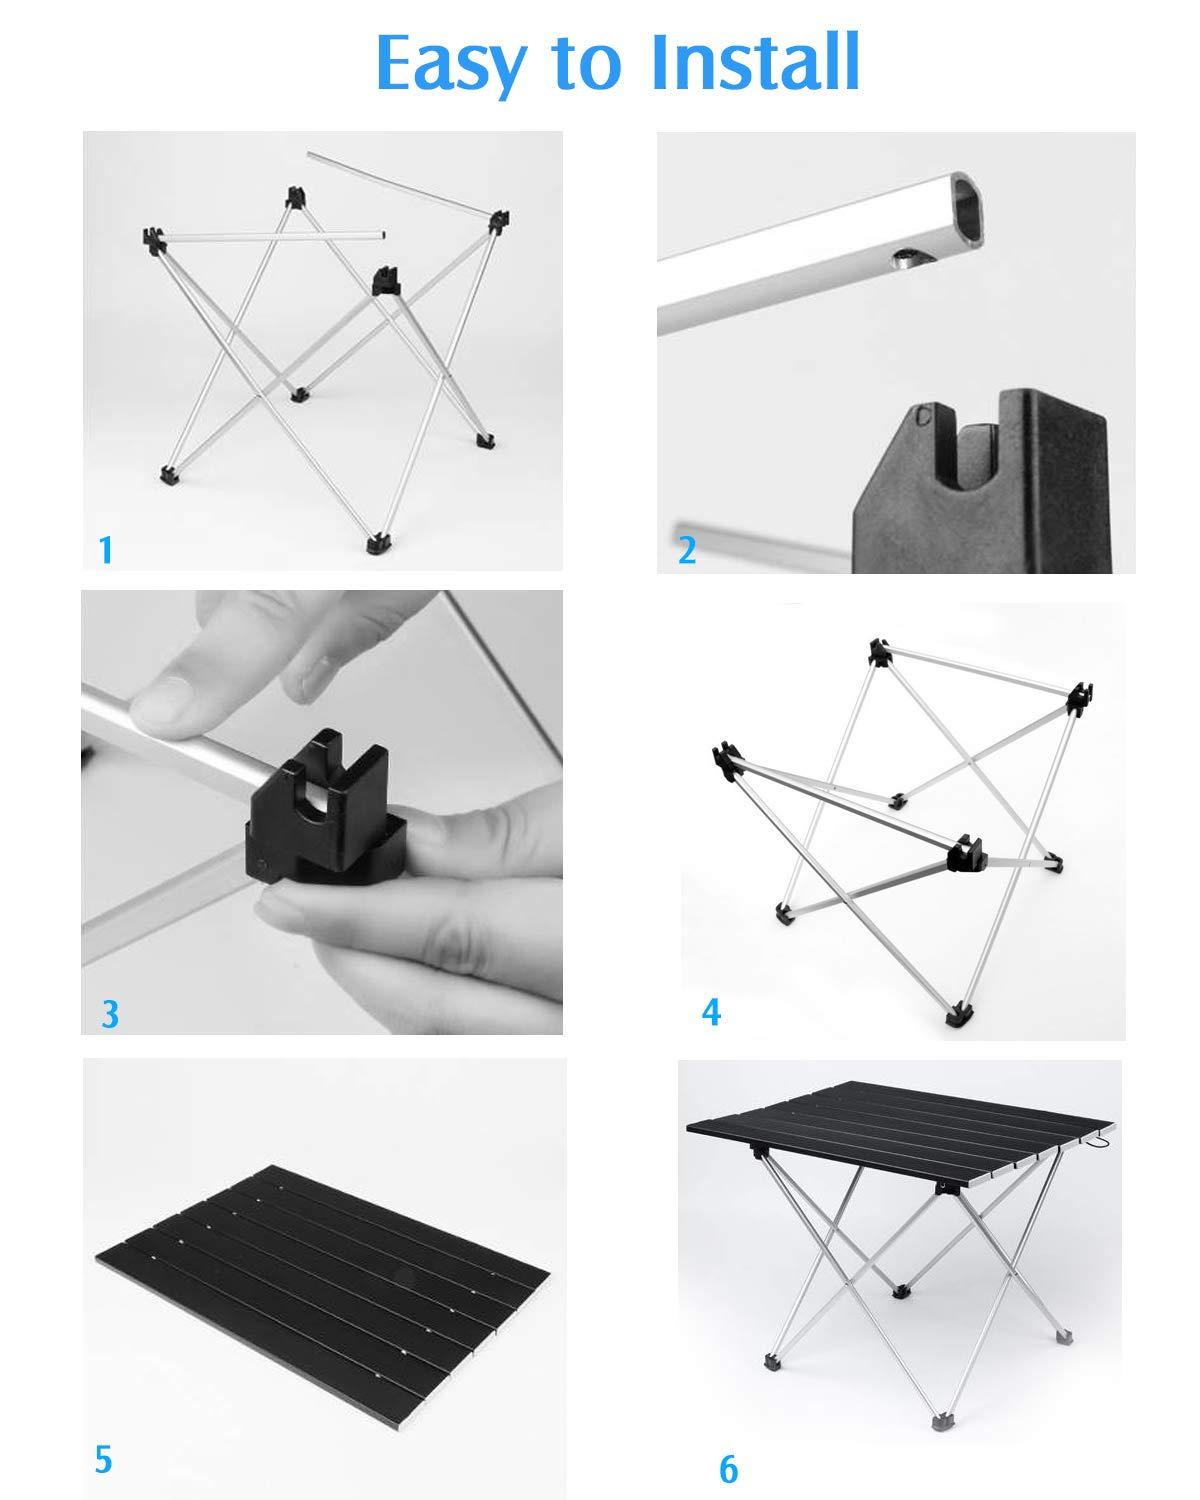 Camping Table Utility Folding Table with Aluminum Table Top Portable Carry Bag, Outdoor Foldable Table for Picnic Camp Beach Dinner